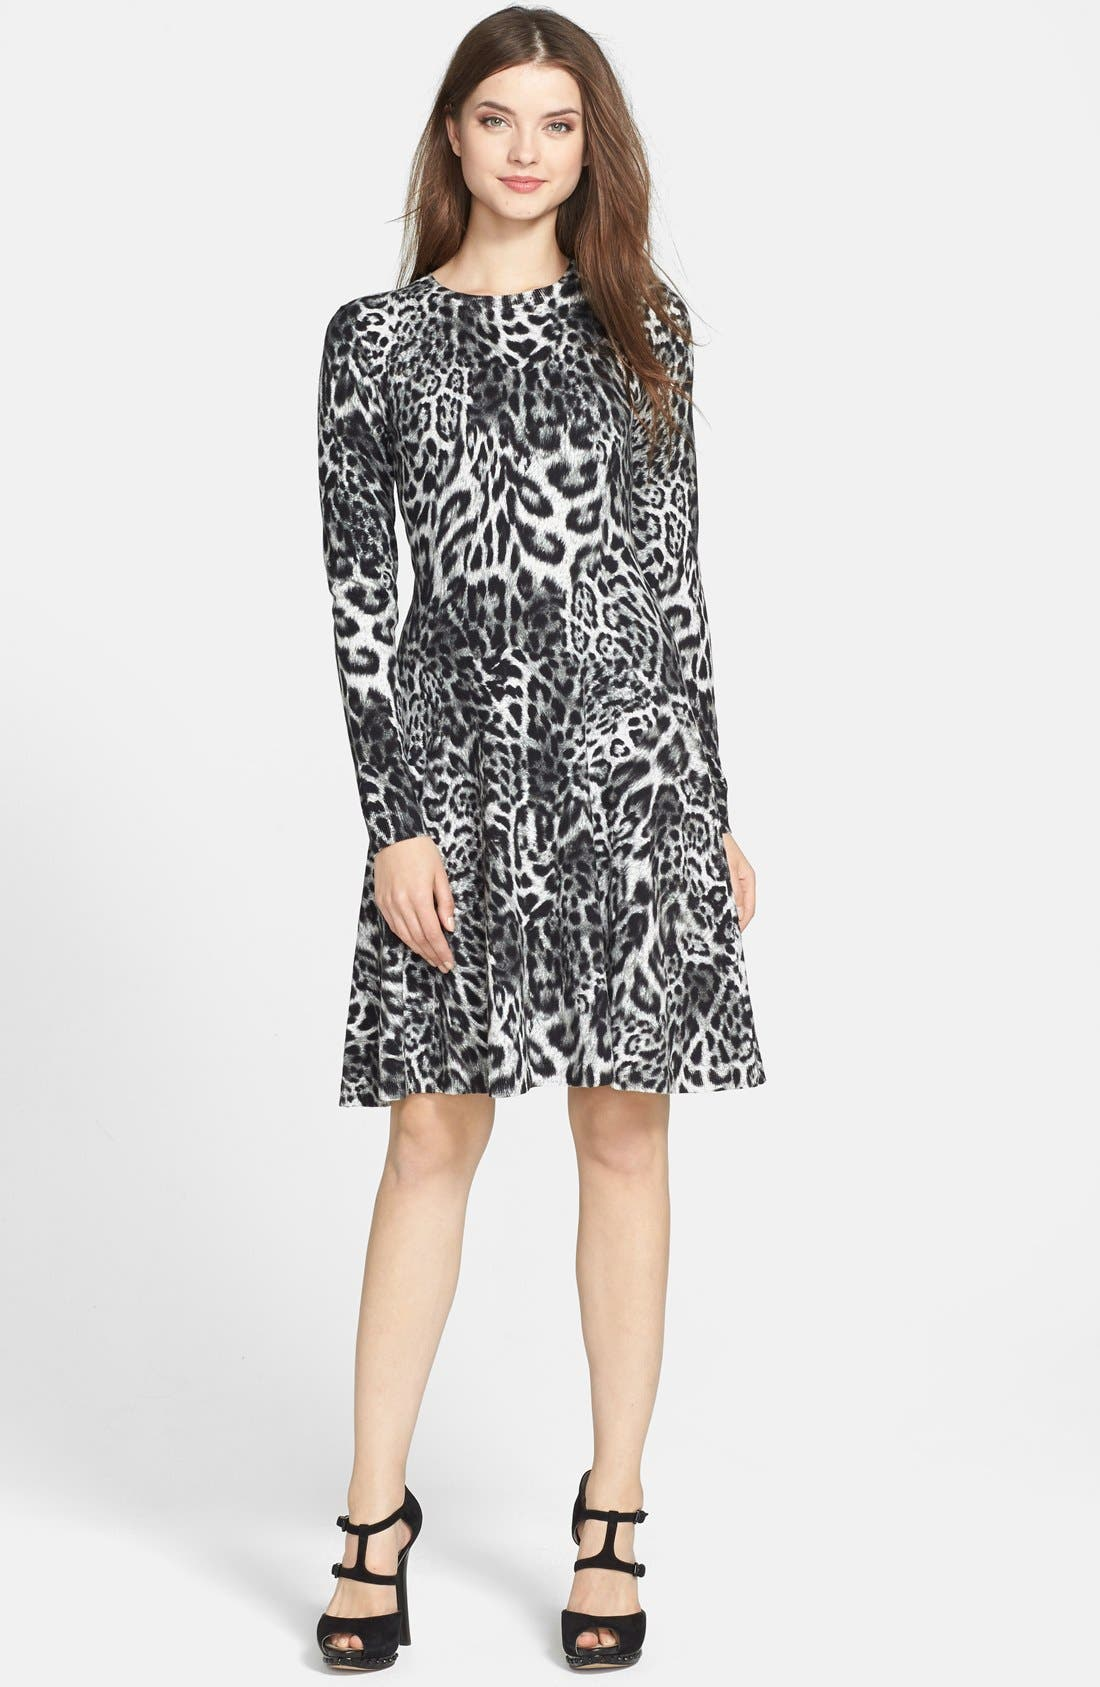 MICHAEL MICHAEL KORS 'Fremont' Leopard Print Fit & Flare Dress, Main, color, 001